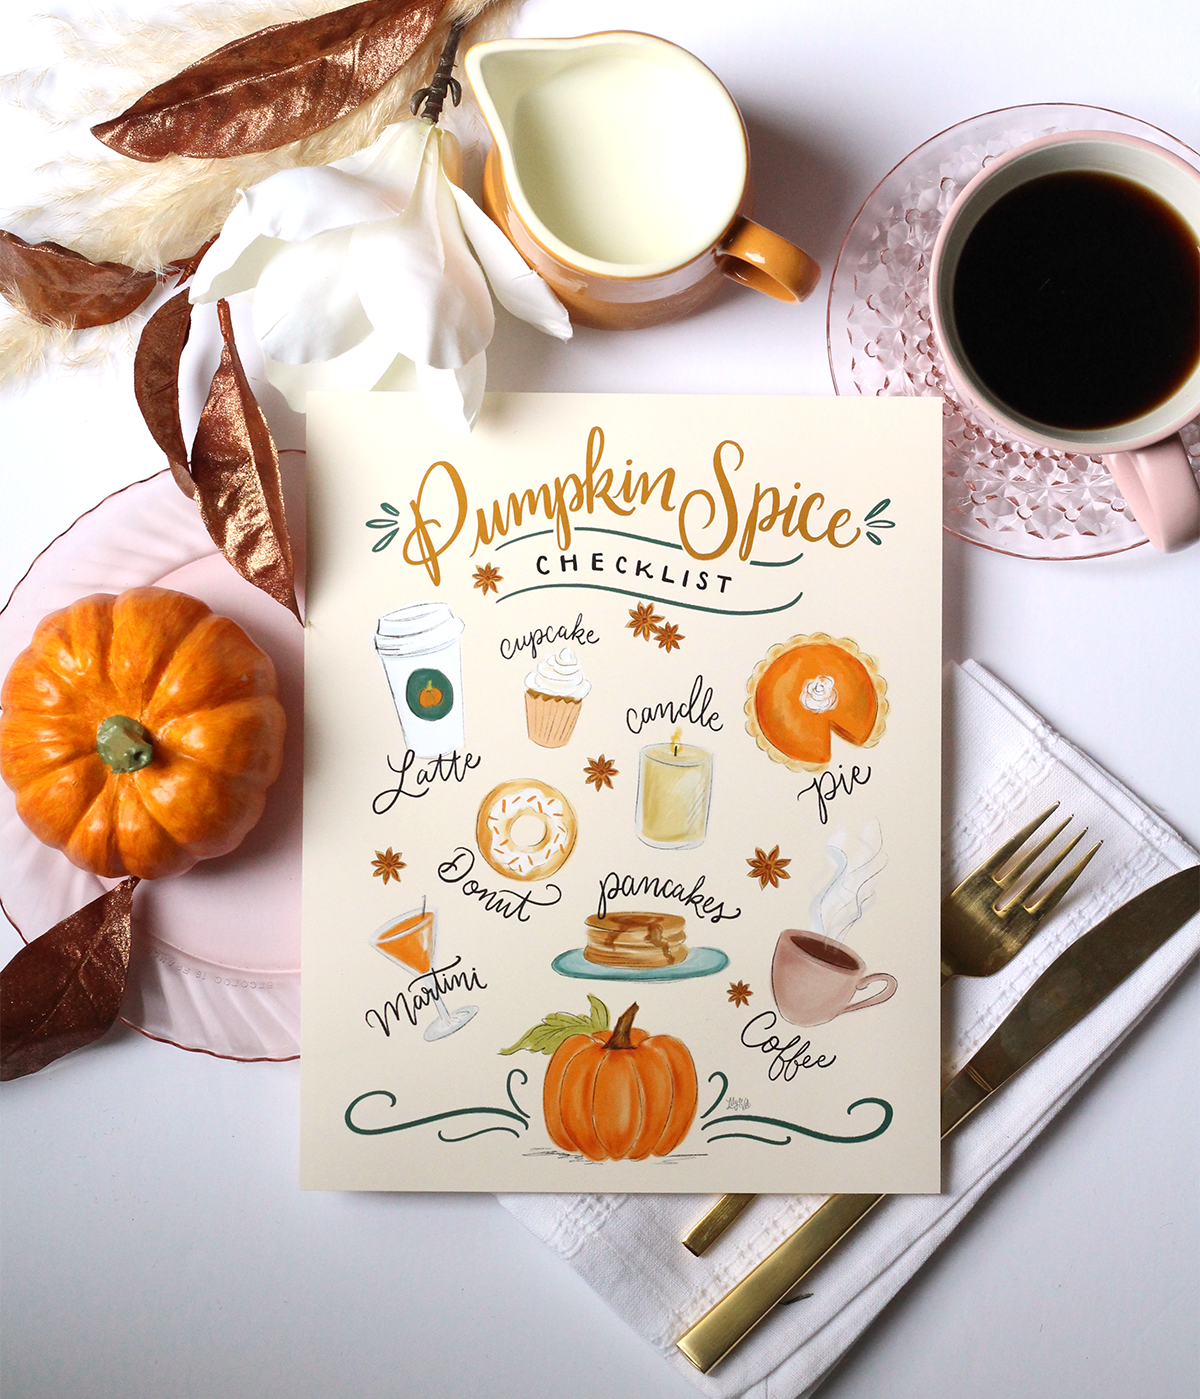 Pumpkin Spice Checklist Art for the Pumpkin Spice Lover